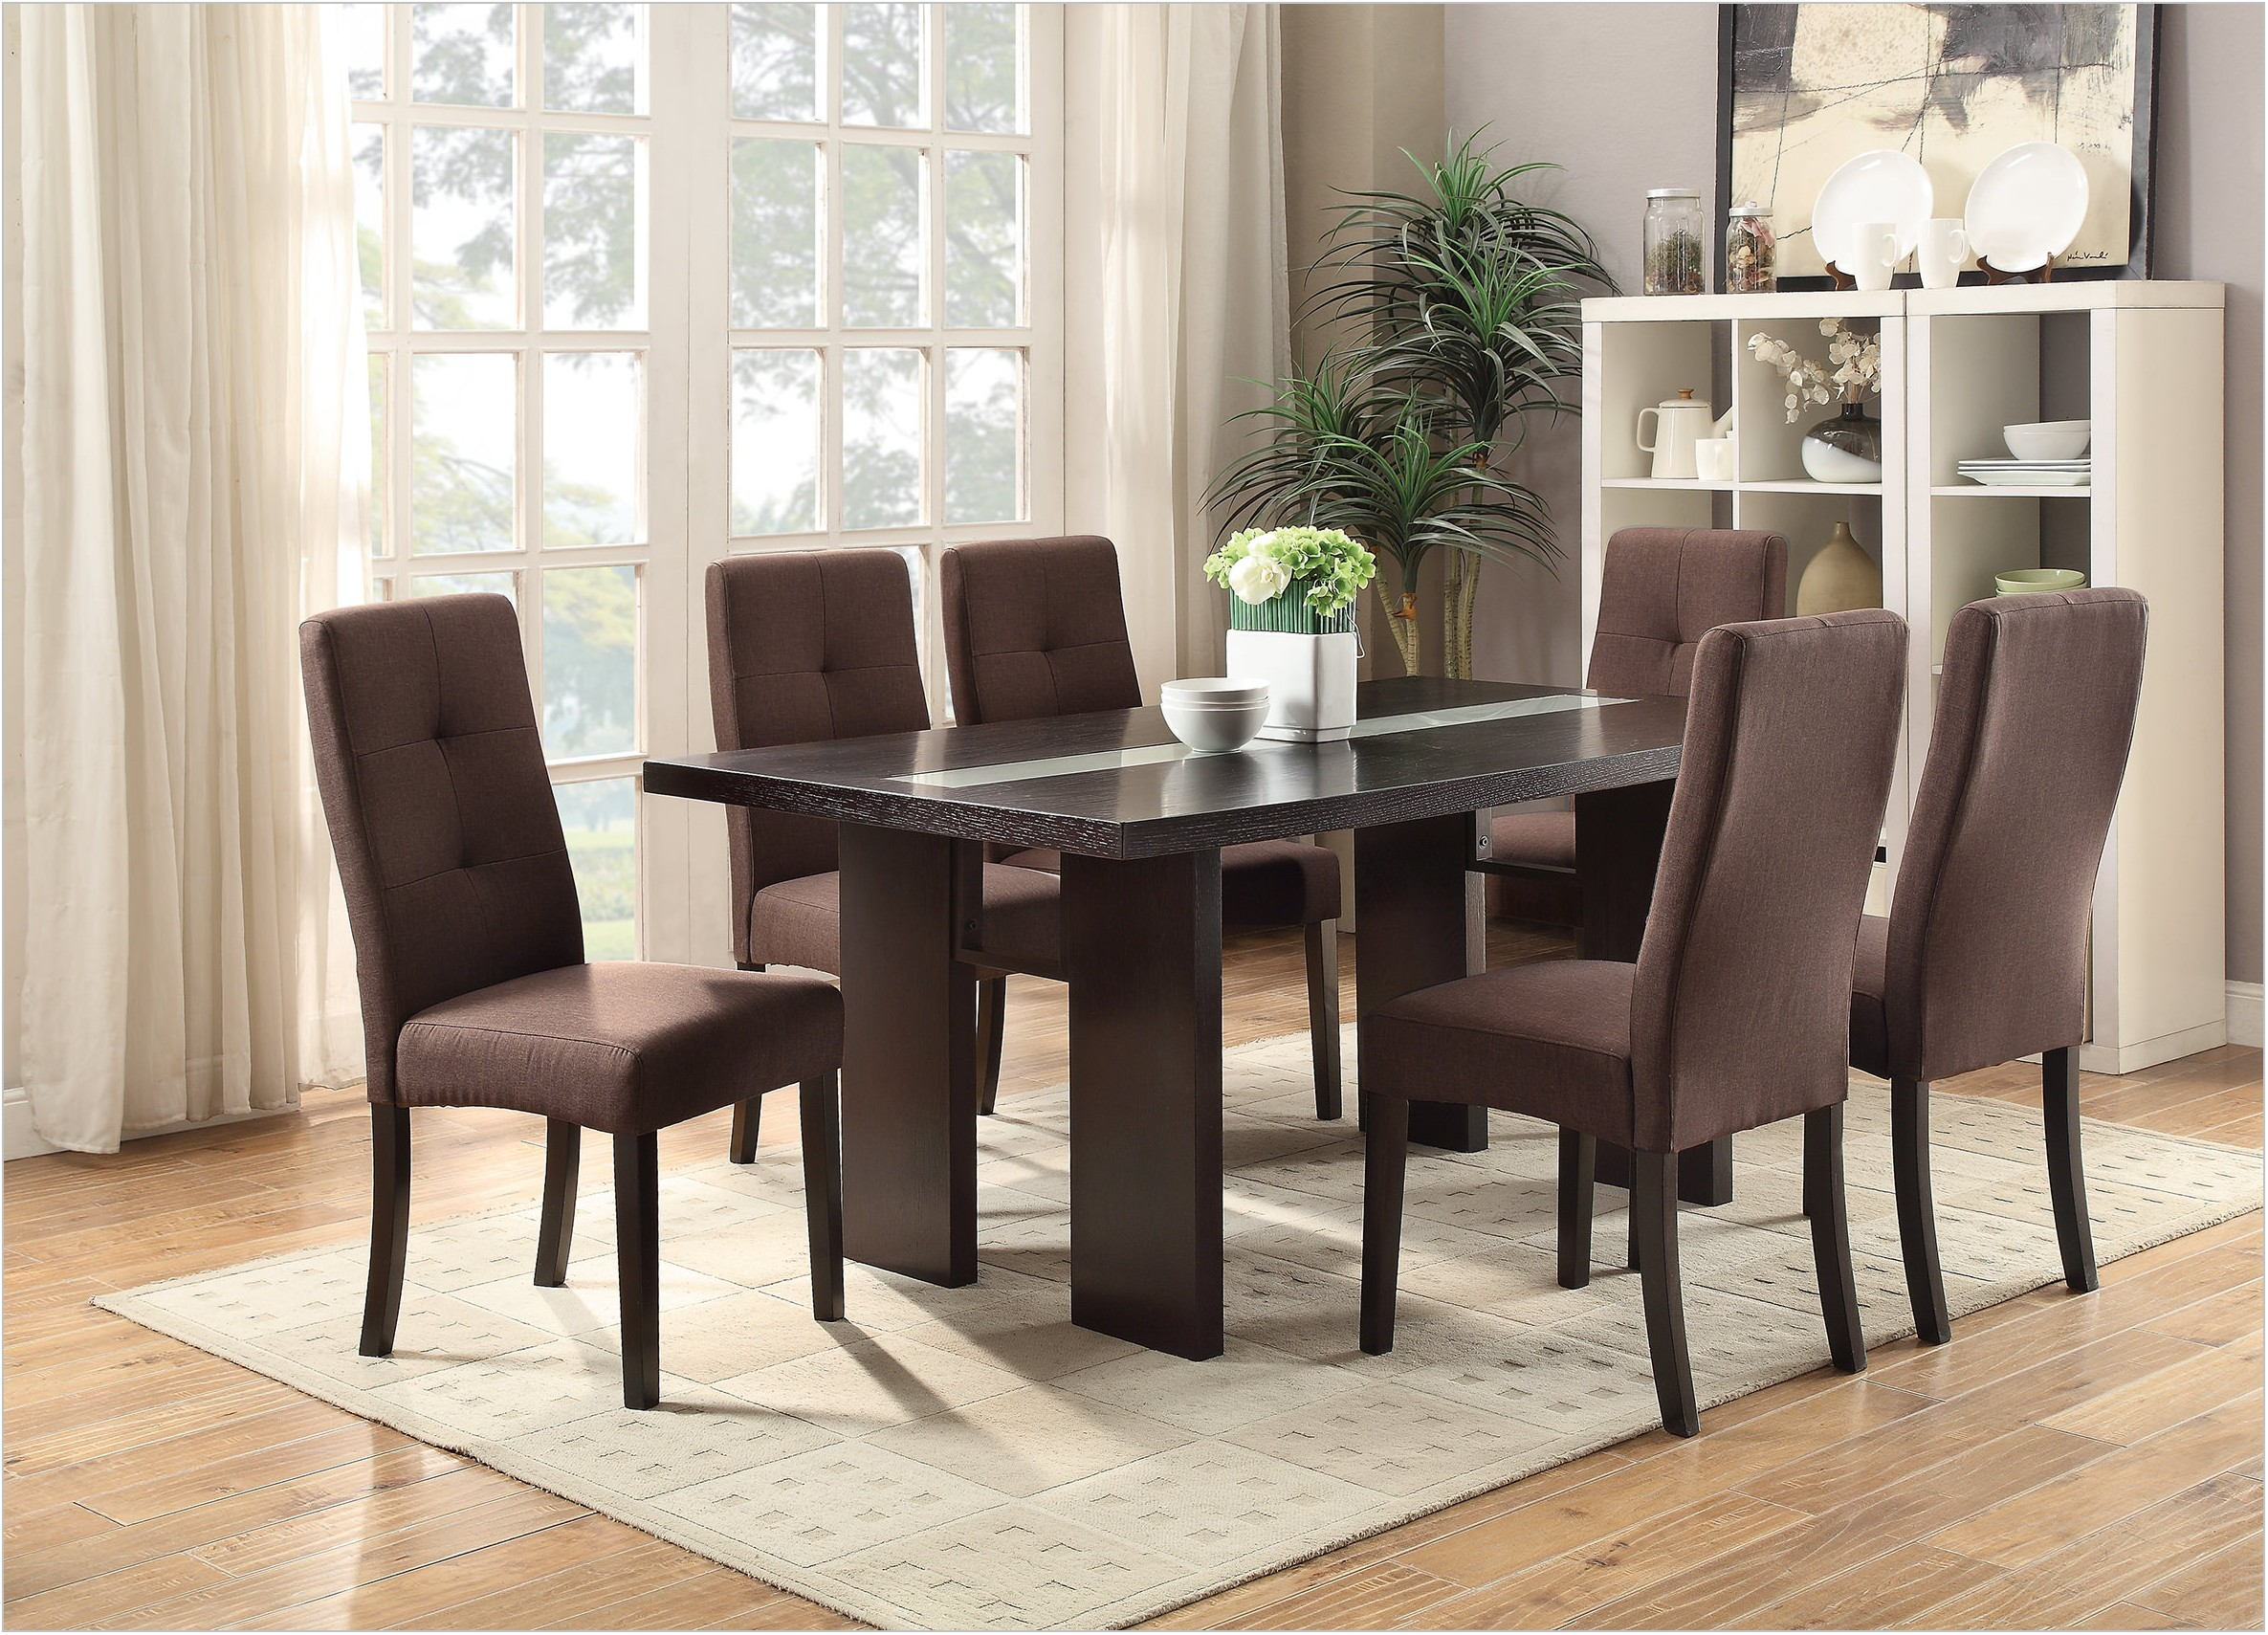 Noah Vanilla Dining Room Set